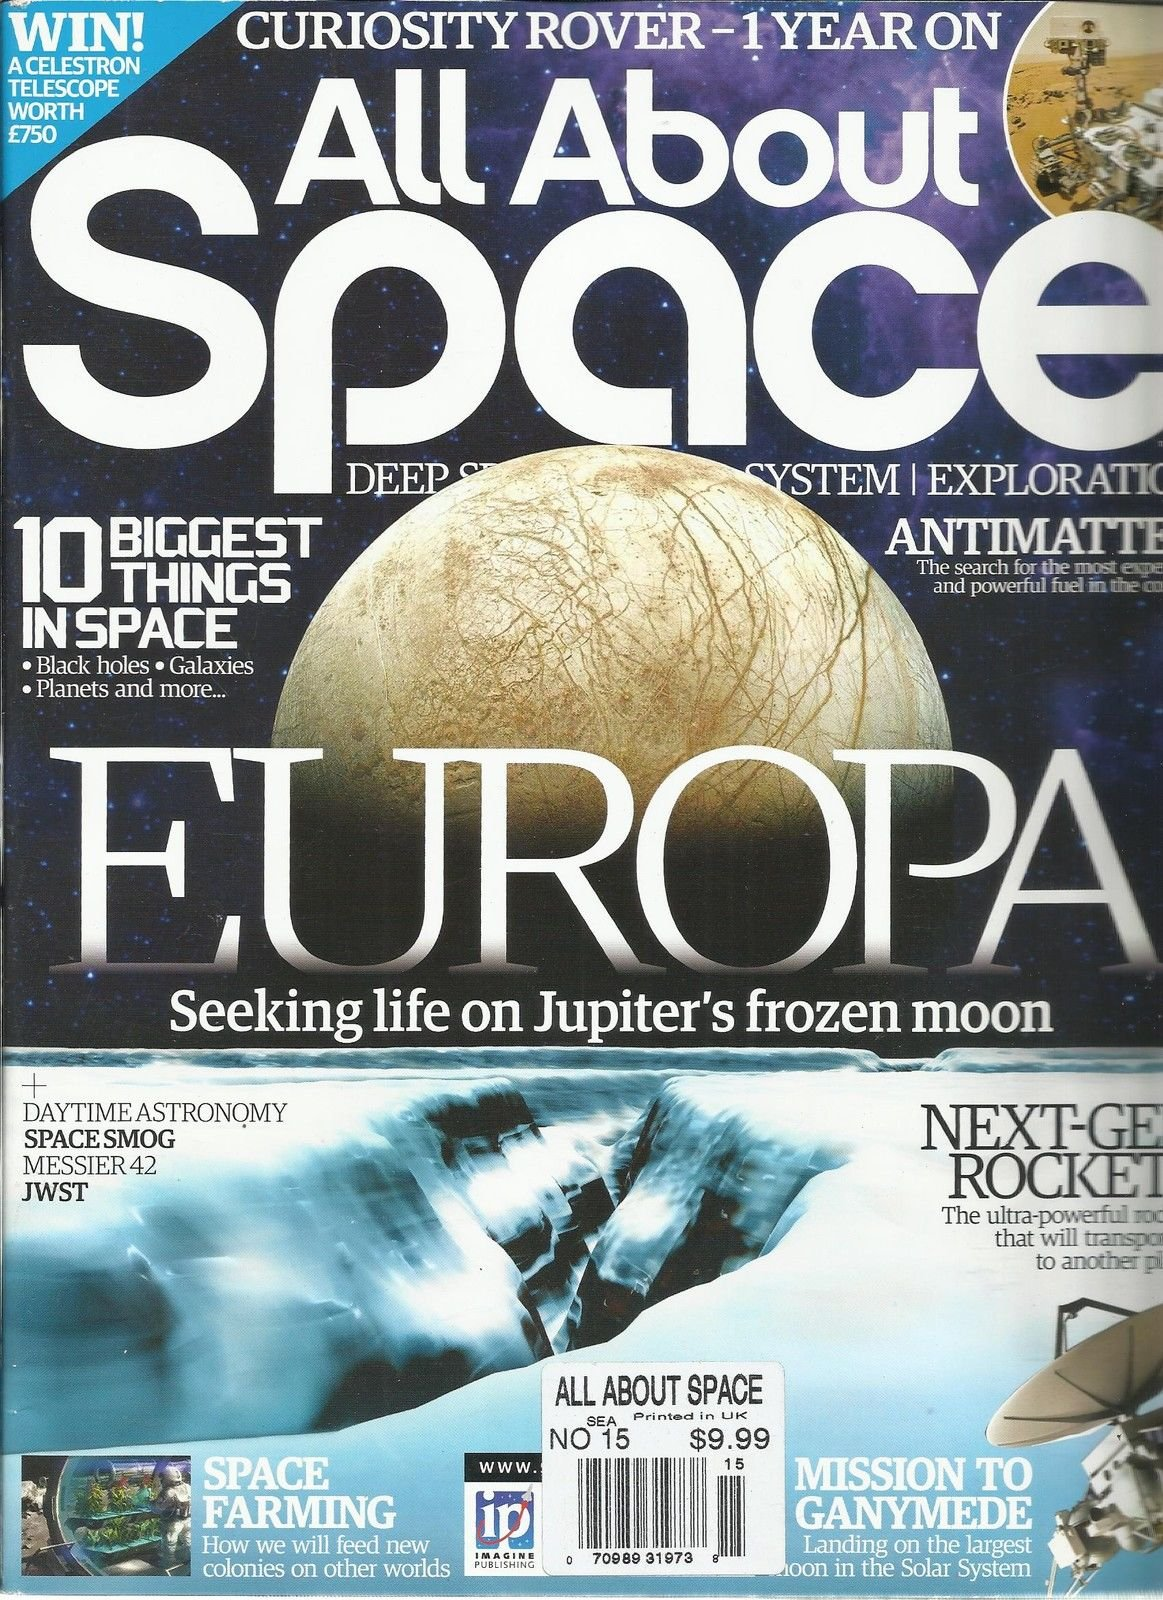 ALL ABOUT SPACE, NO.15 (DEEP SPACE SOLAR SYSTEM EXPLORATION * 10 BIGGEST